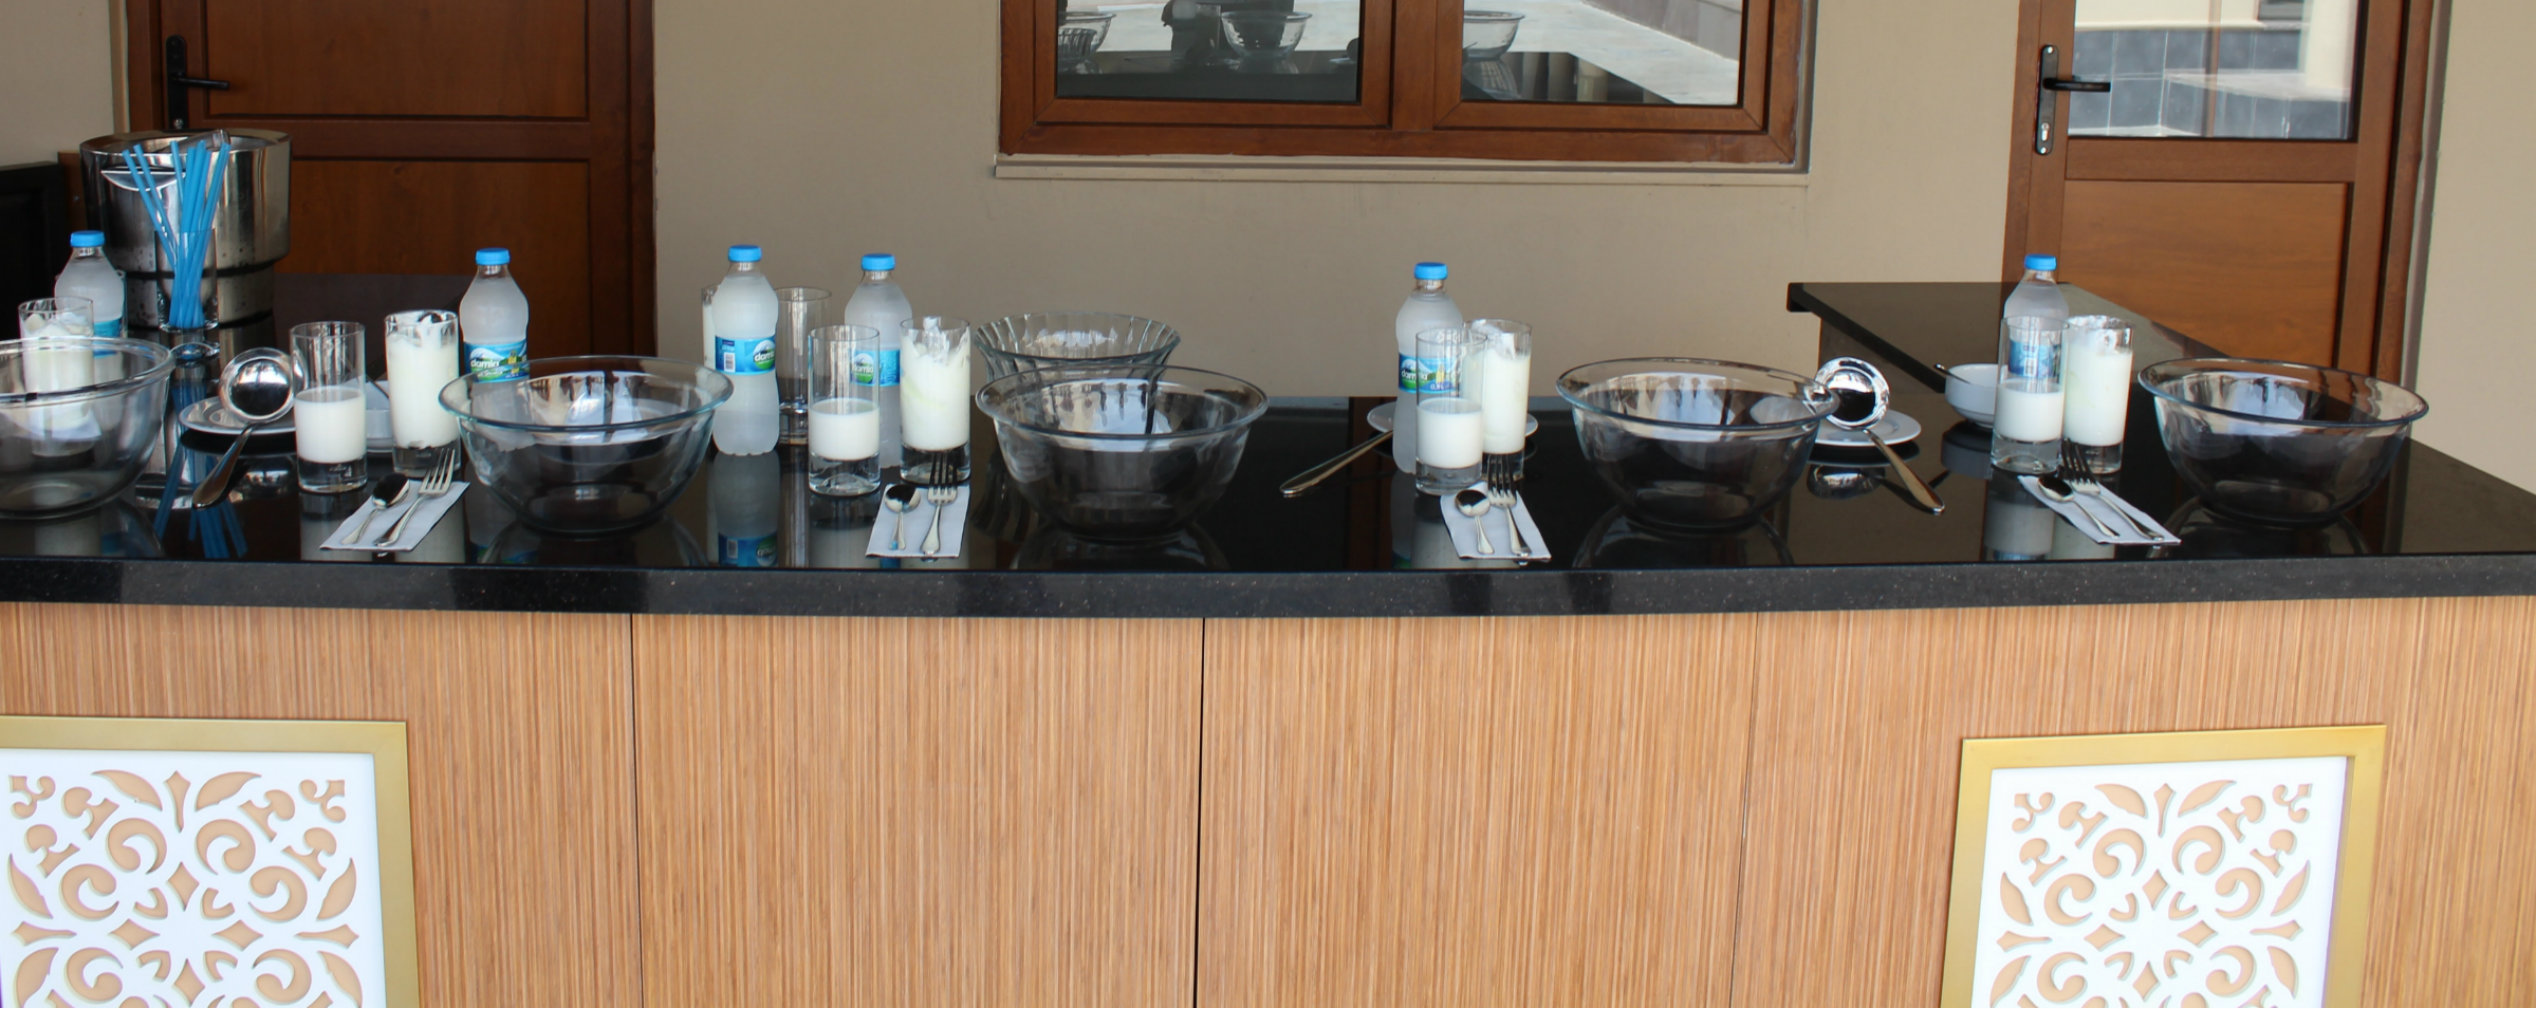 LEARN HOW TO MIX AN AYRAN AT THE TUI BLUE PALM GARDEN